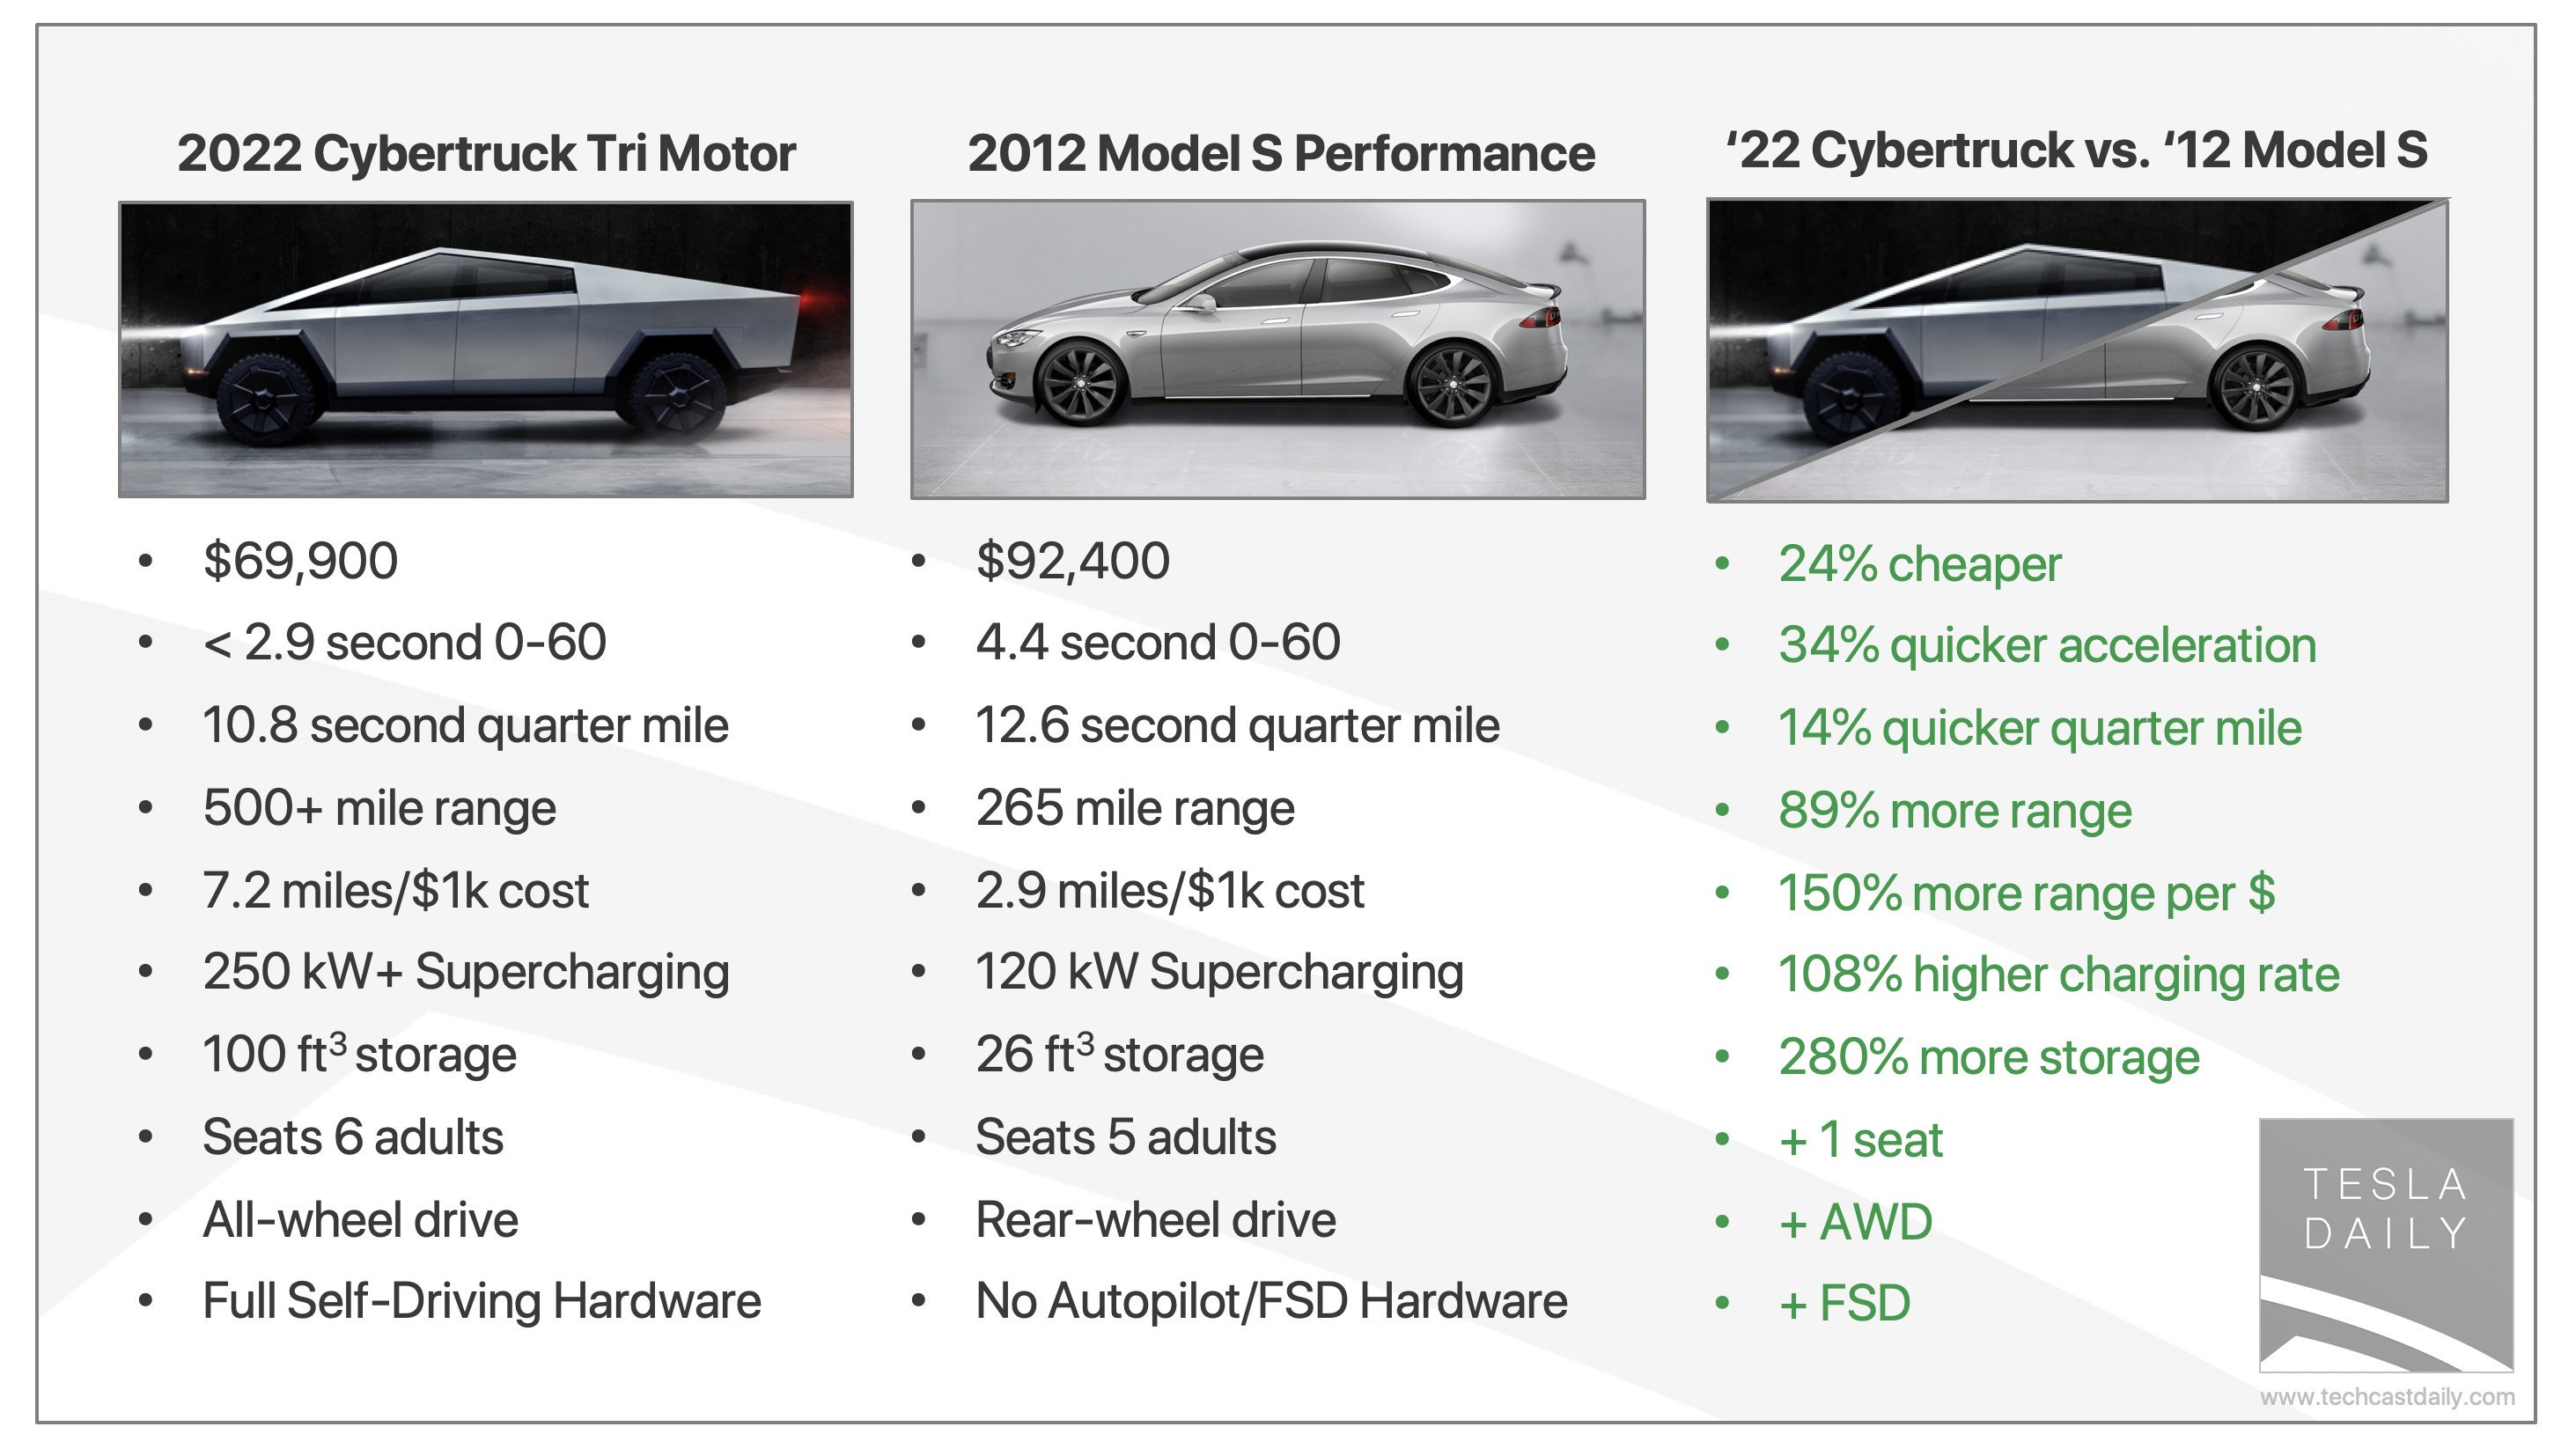 2012 Tesla Model S vs. 2022 Tesla Cybertruck in terms of price, cost, and range improvement (%) over a period of a decade.